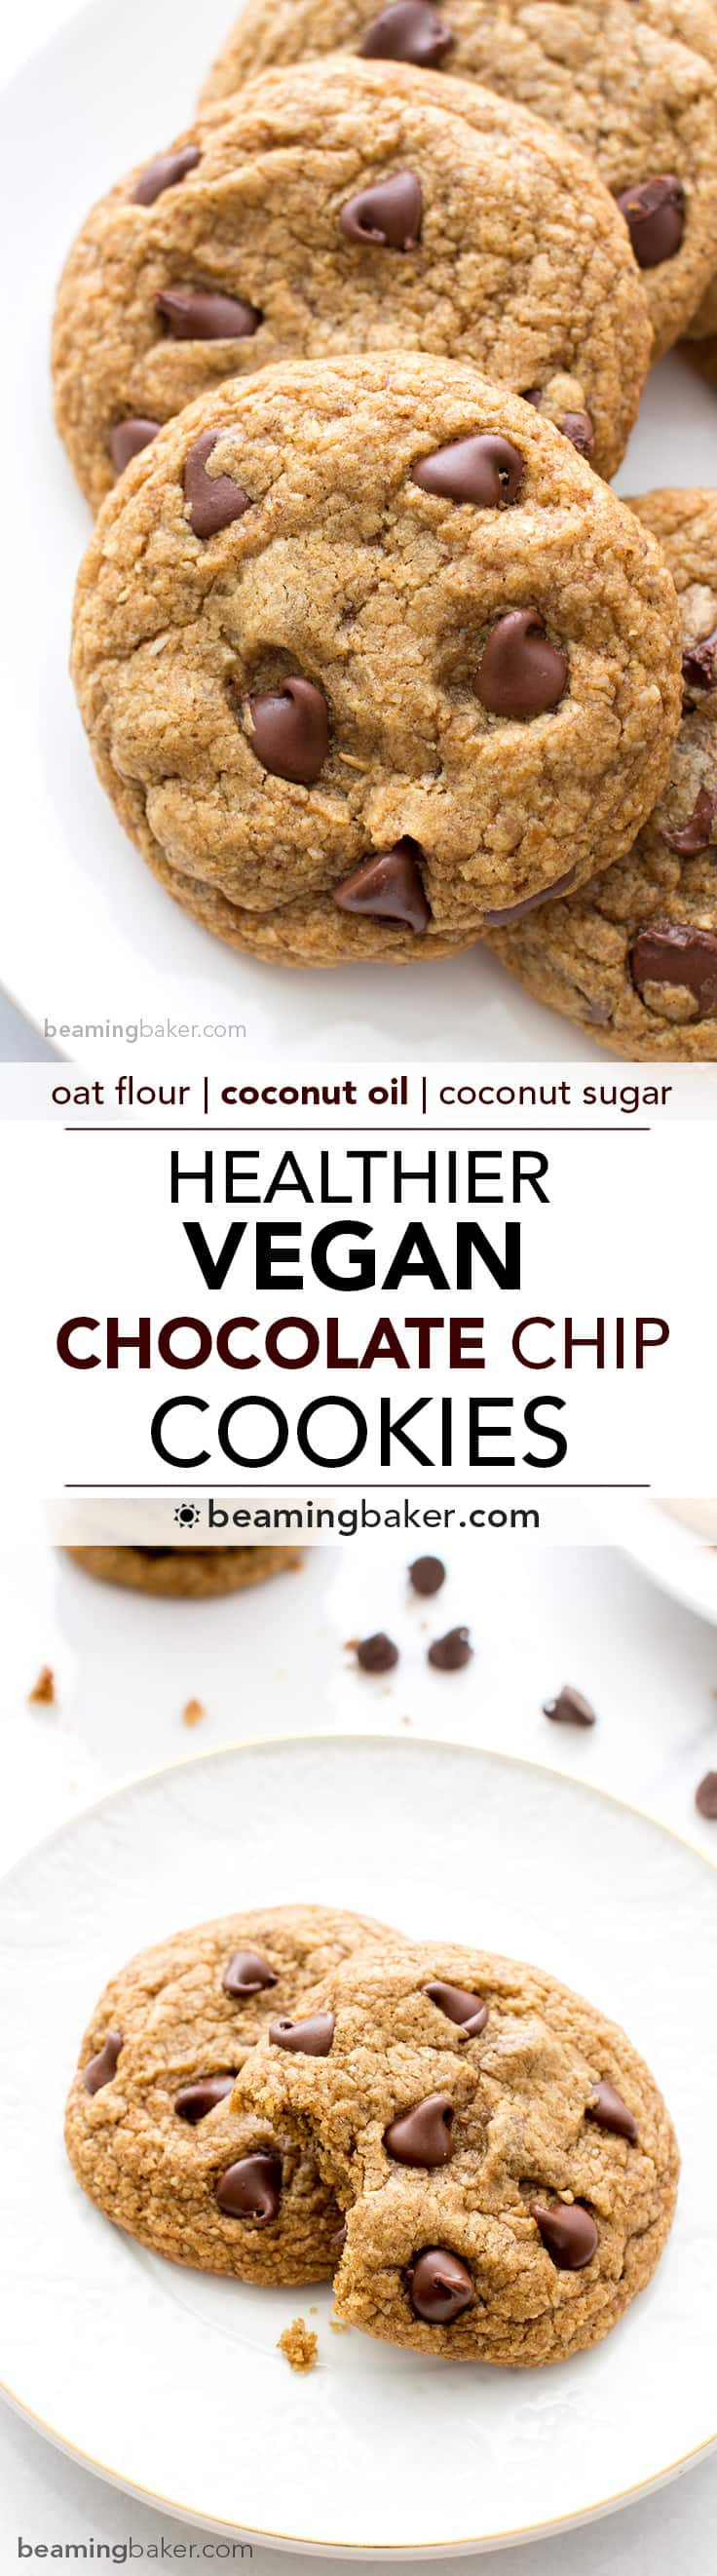 Healthier Vegan Chocolate Chip Cookies - Beaming Baker